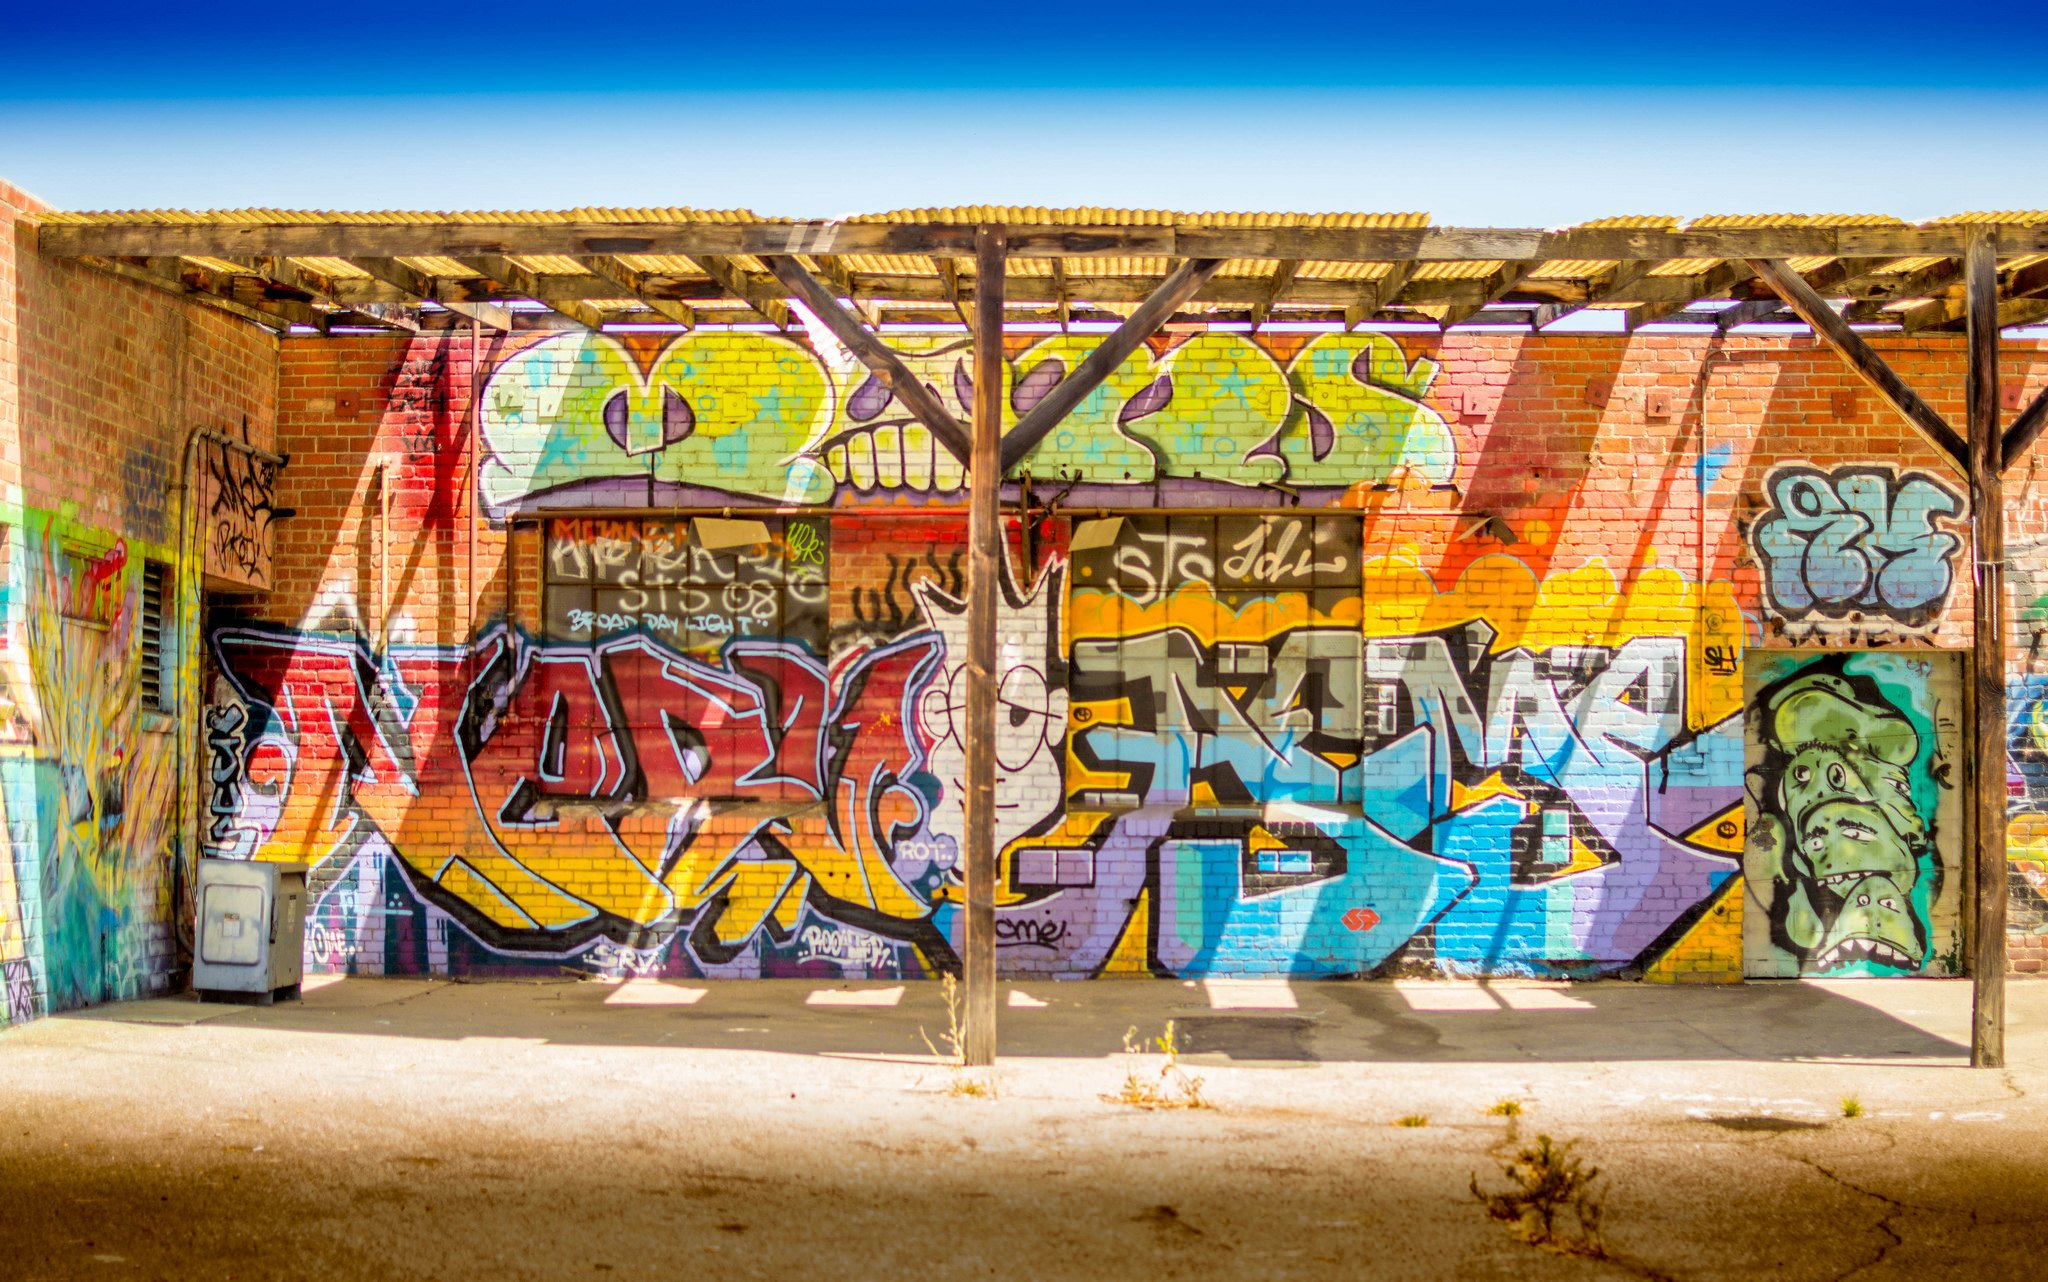 Los Angeles California Pacific Buildings Cities Graffiti - Los Angeles Graffiti Wallpaper 4k , HD Wallpaper & Backgrounds